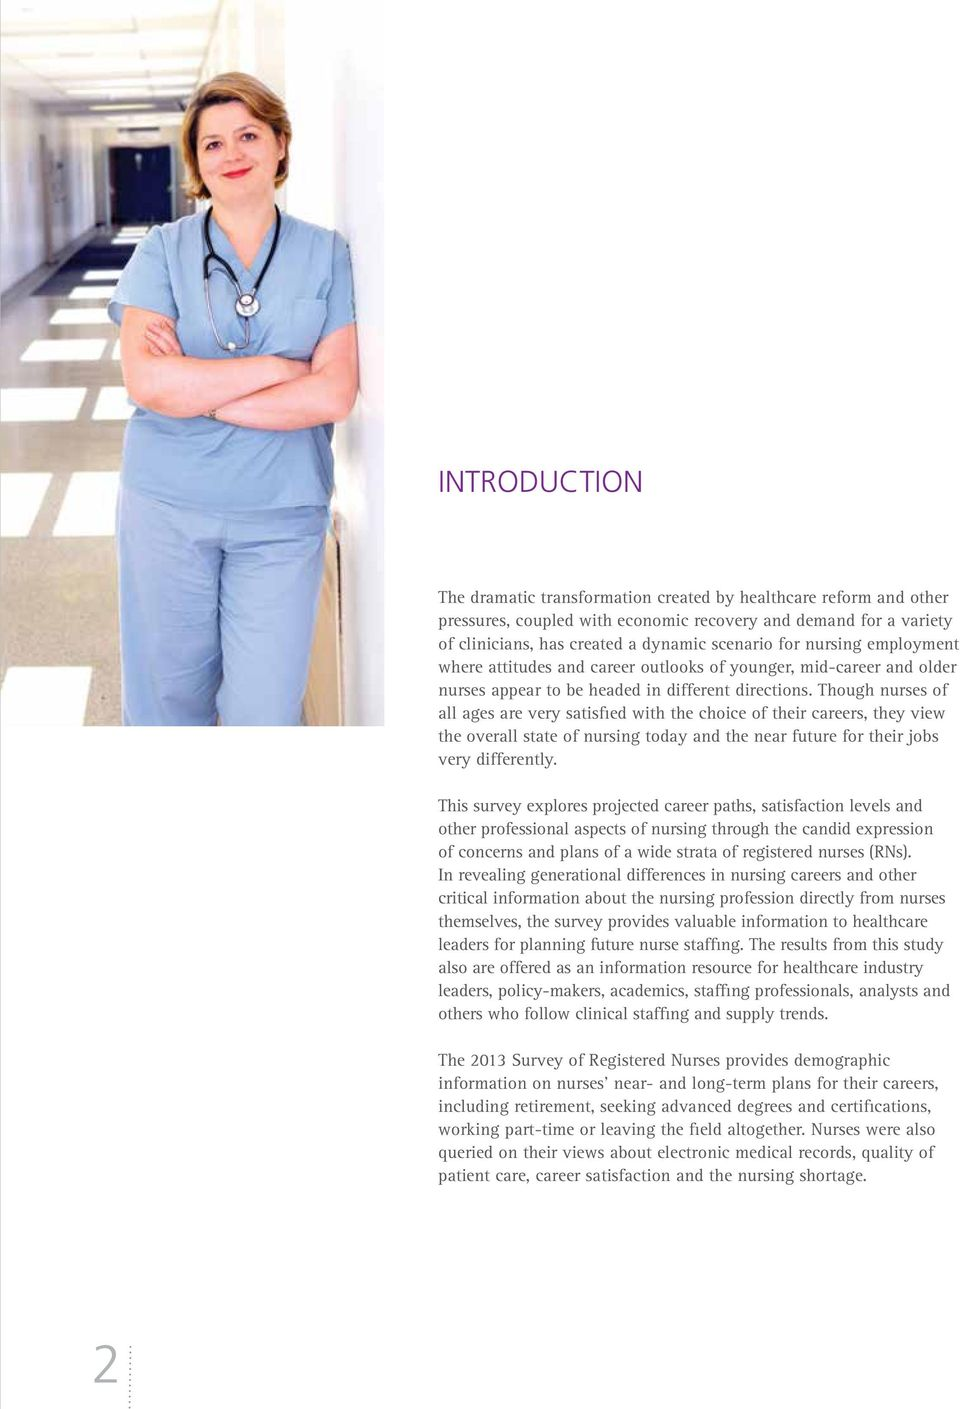 Though nurses of all ages are very satisfied with the choice of their careers, they view the overall state of nursing today and the near future for their jobs very differently.